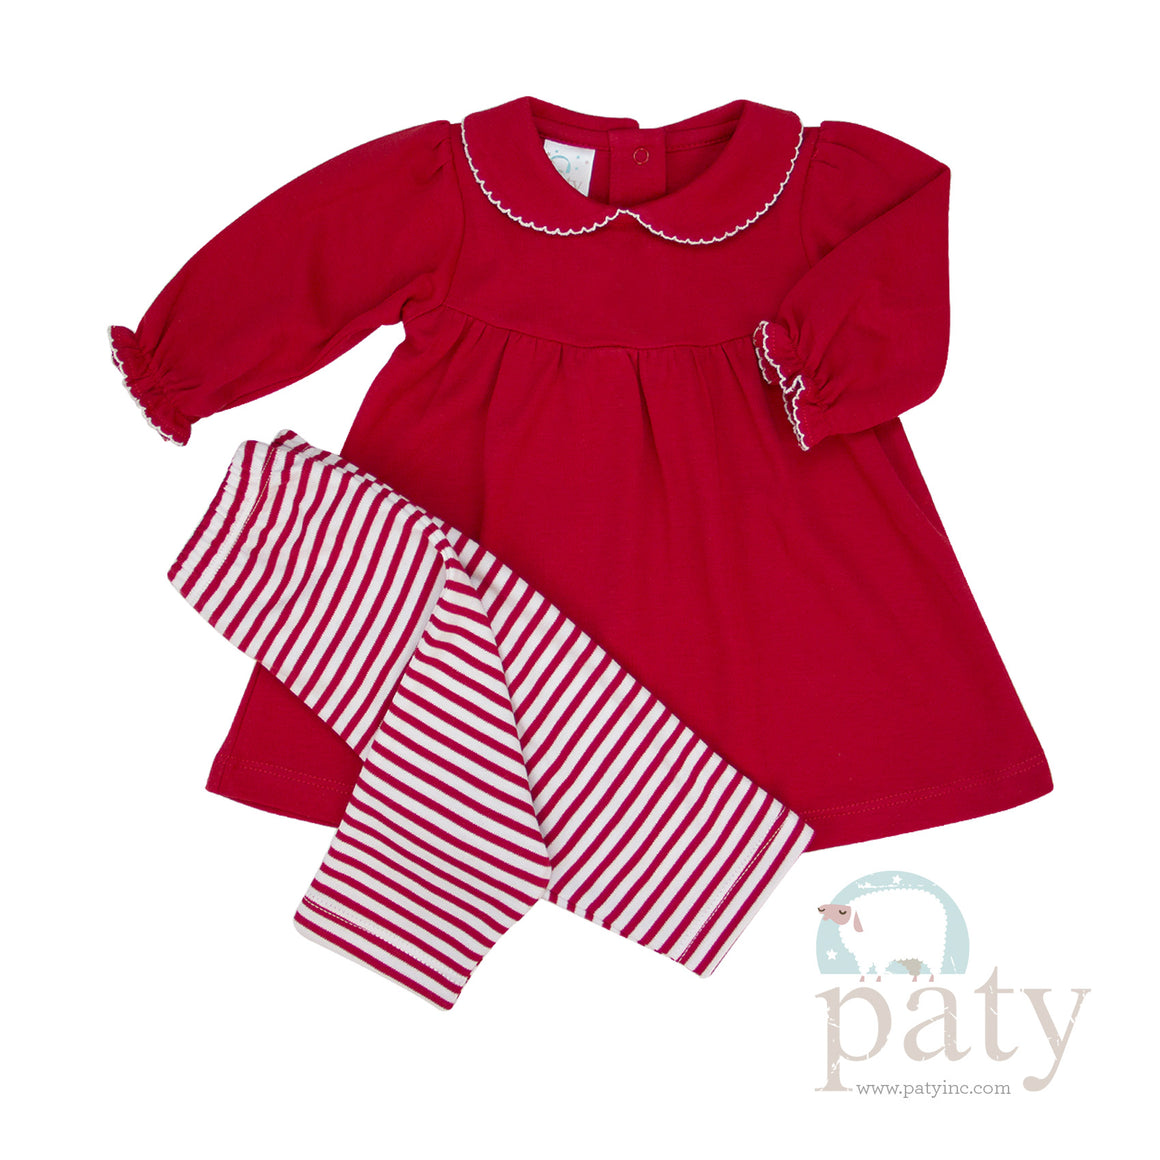 Paty Red Dress with Leggings